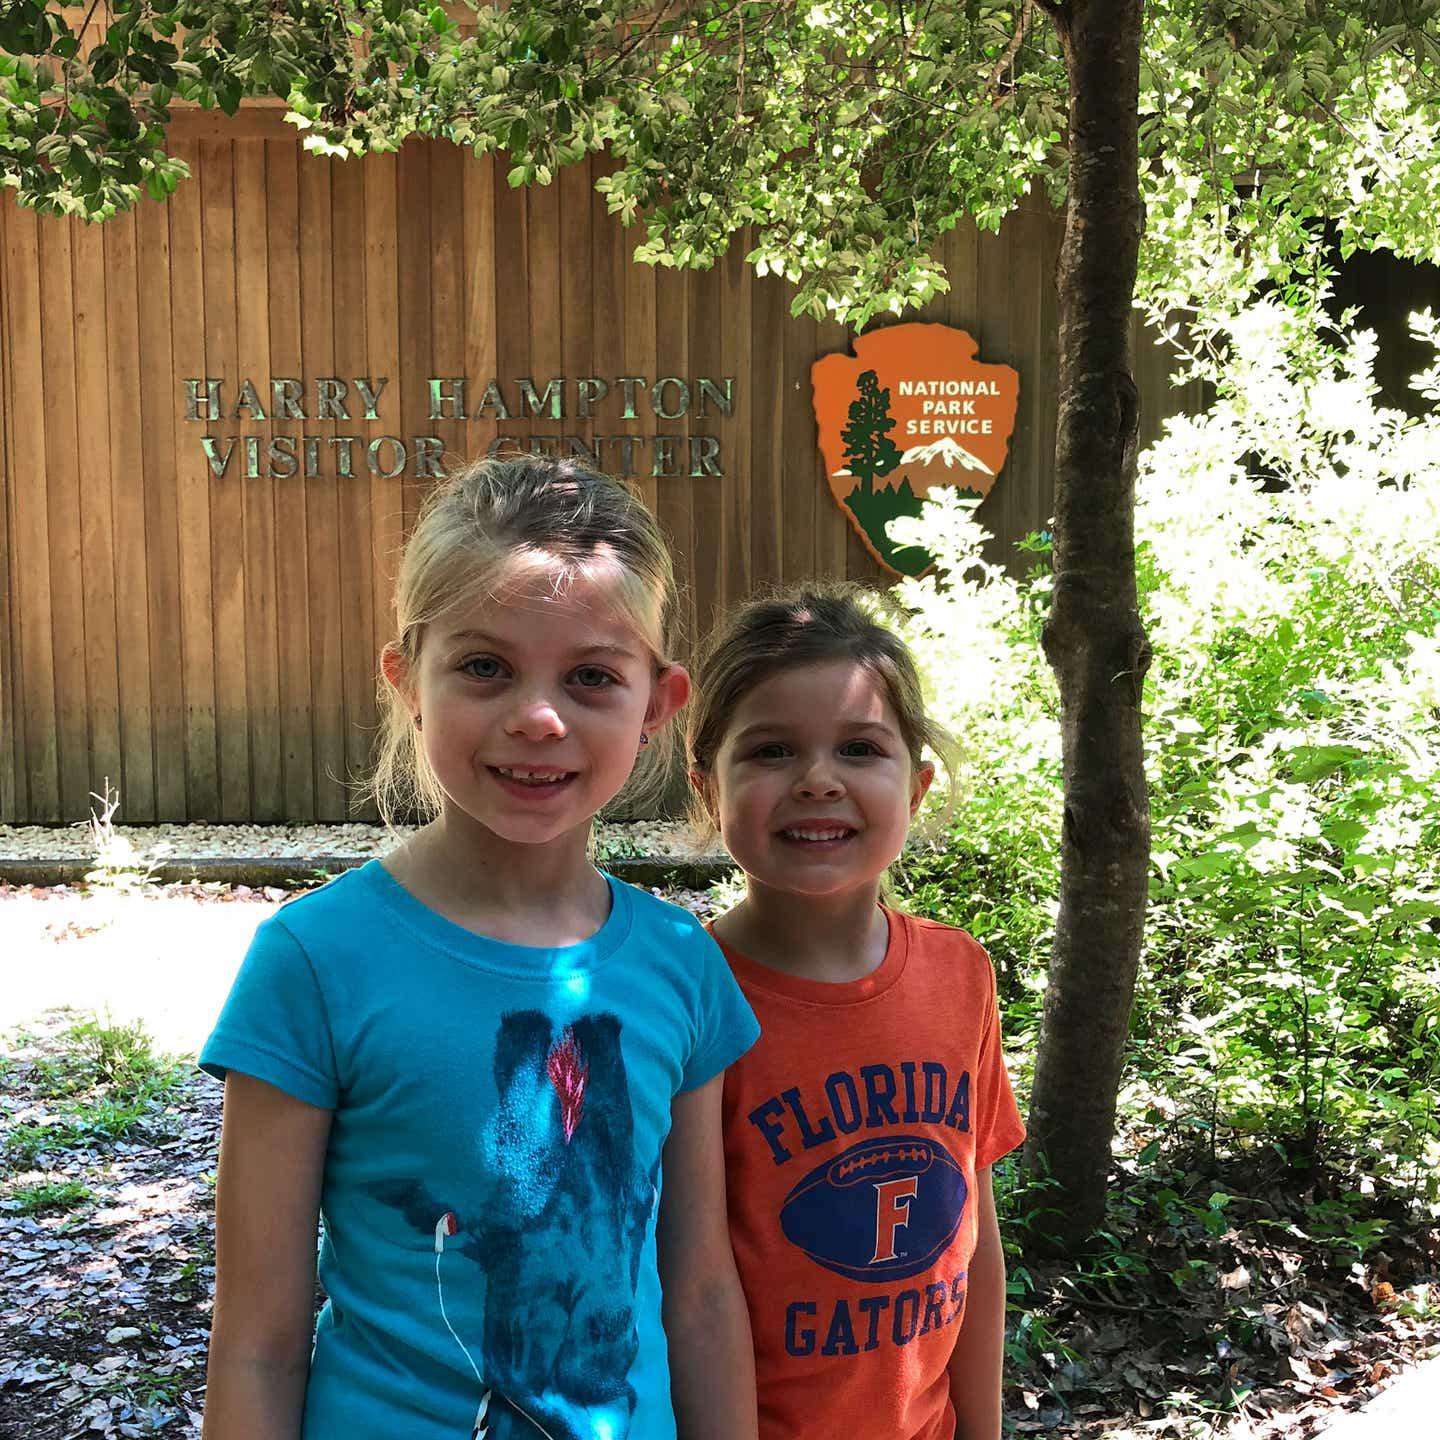 Author, Chris Johnstons' daughters, Kyndall (left), and Kyler (right) pose with a sign that reads, 'Harry Hampton Visitor Center, National Park Service.'